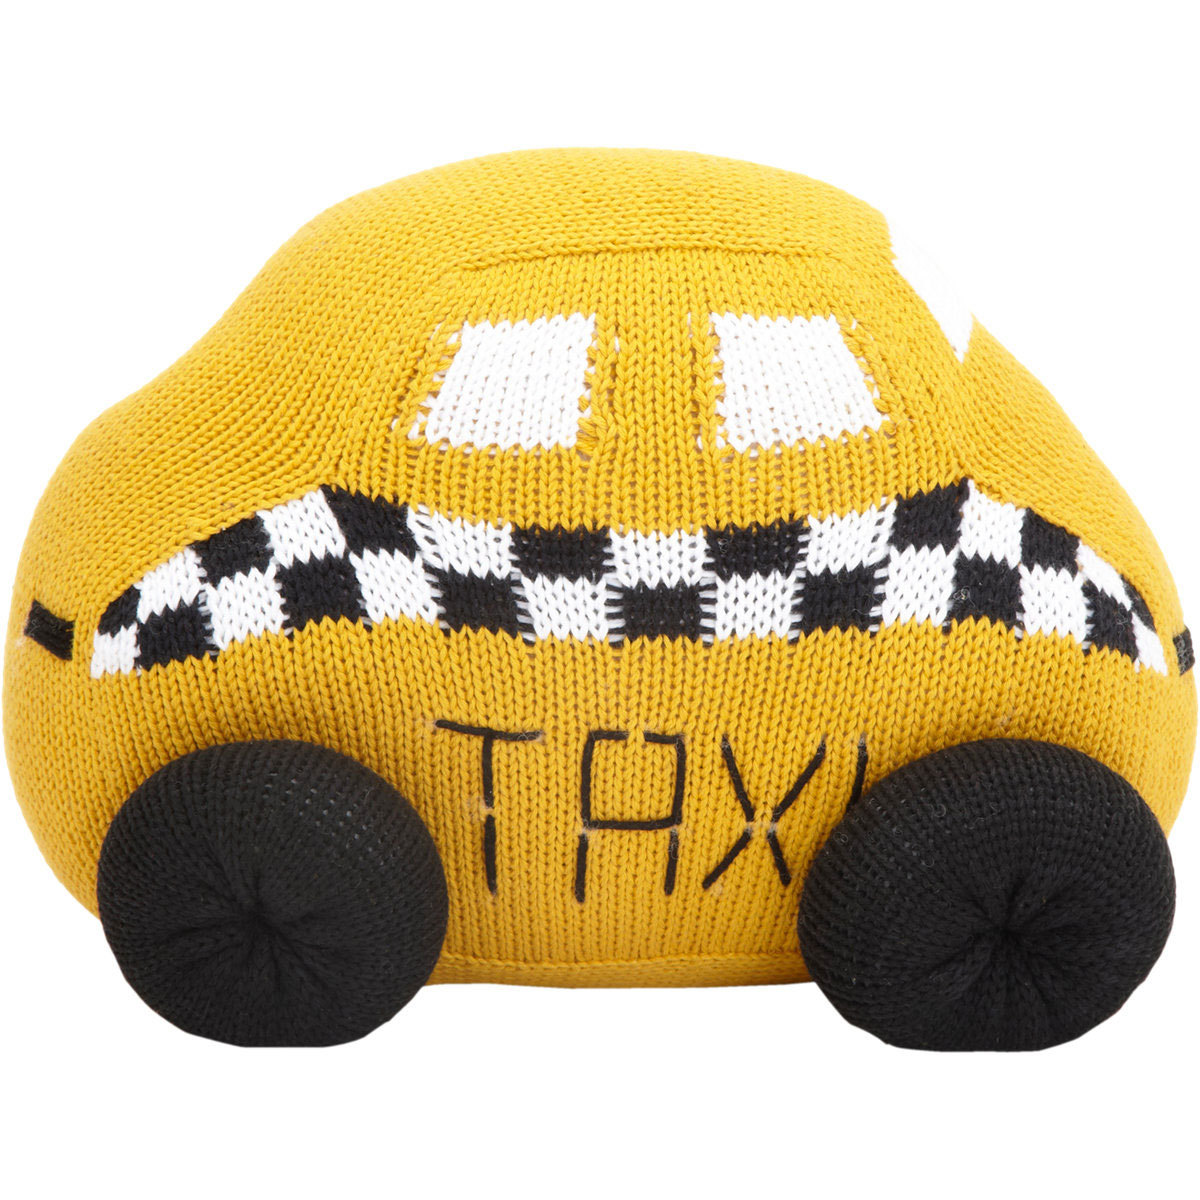 taxi-cab-knit-pillow-kids